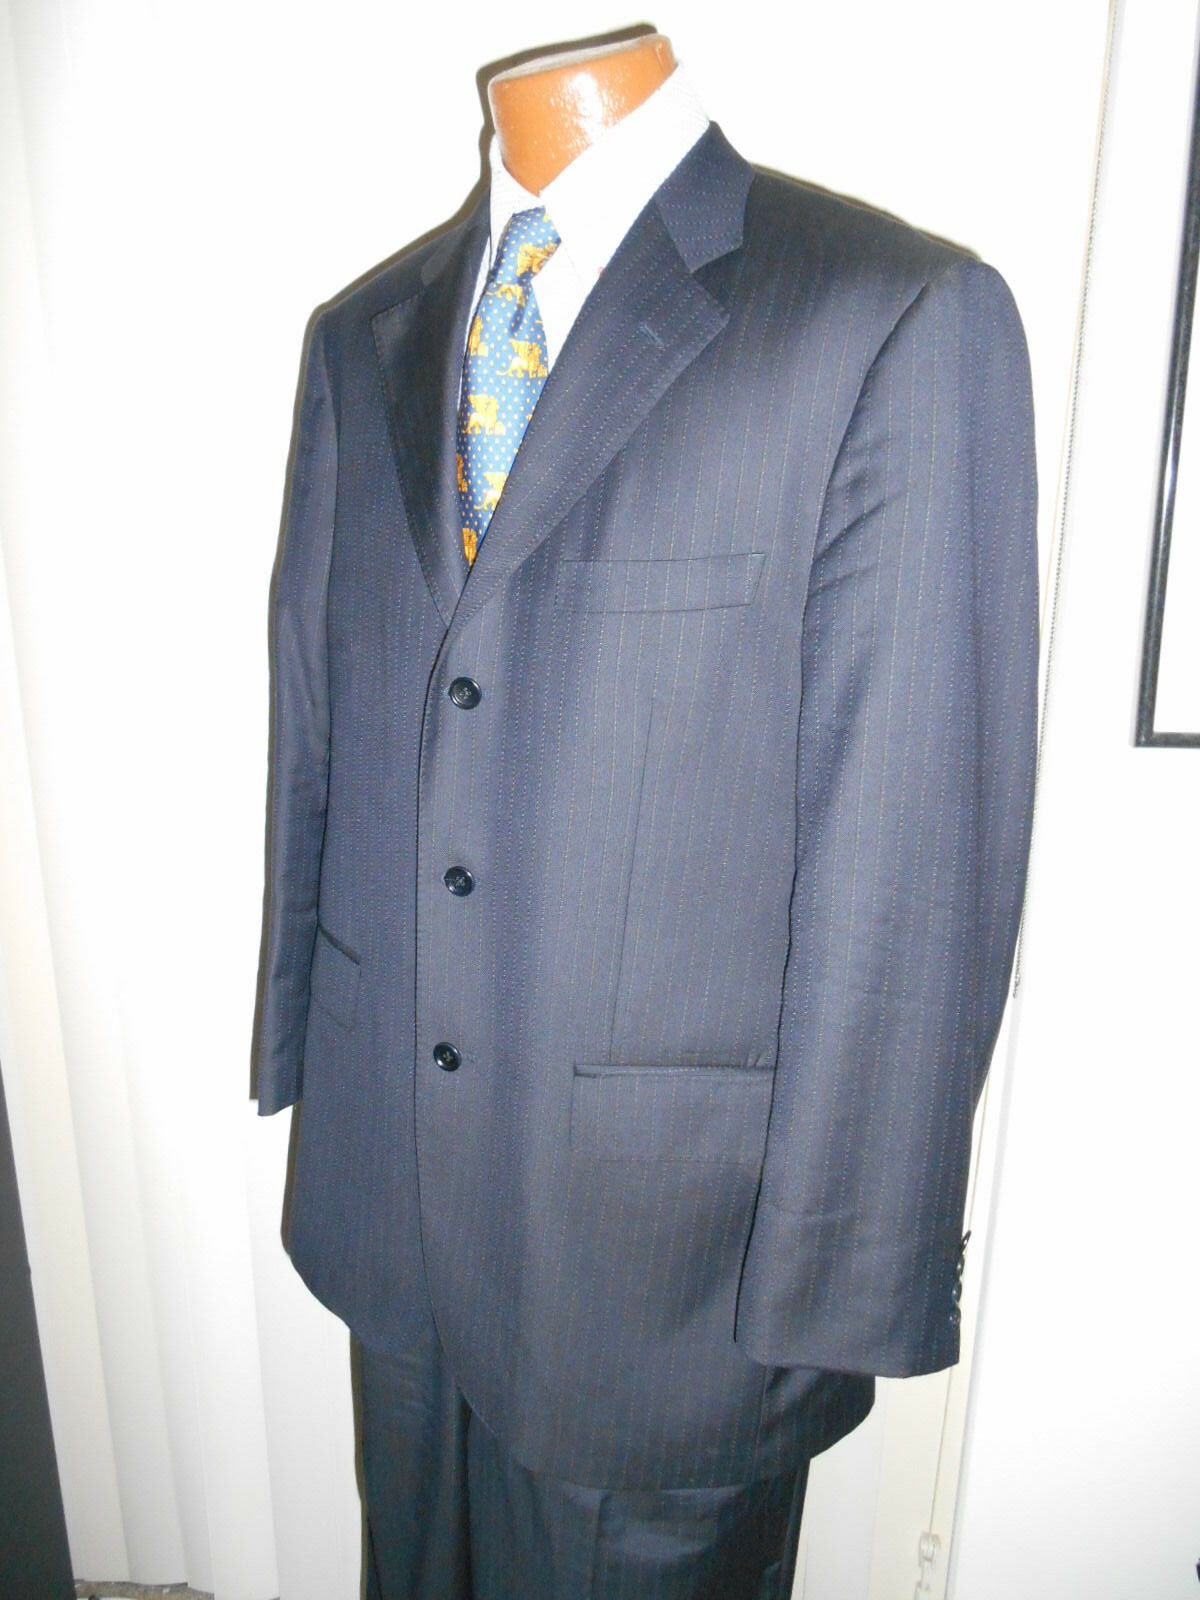 GIANNI MANZONI SUPER 150s FINE STRIPED Suit  SIZE 42 R  From ITALY..   SUPERB